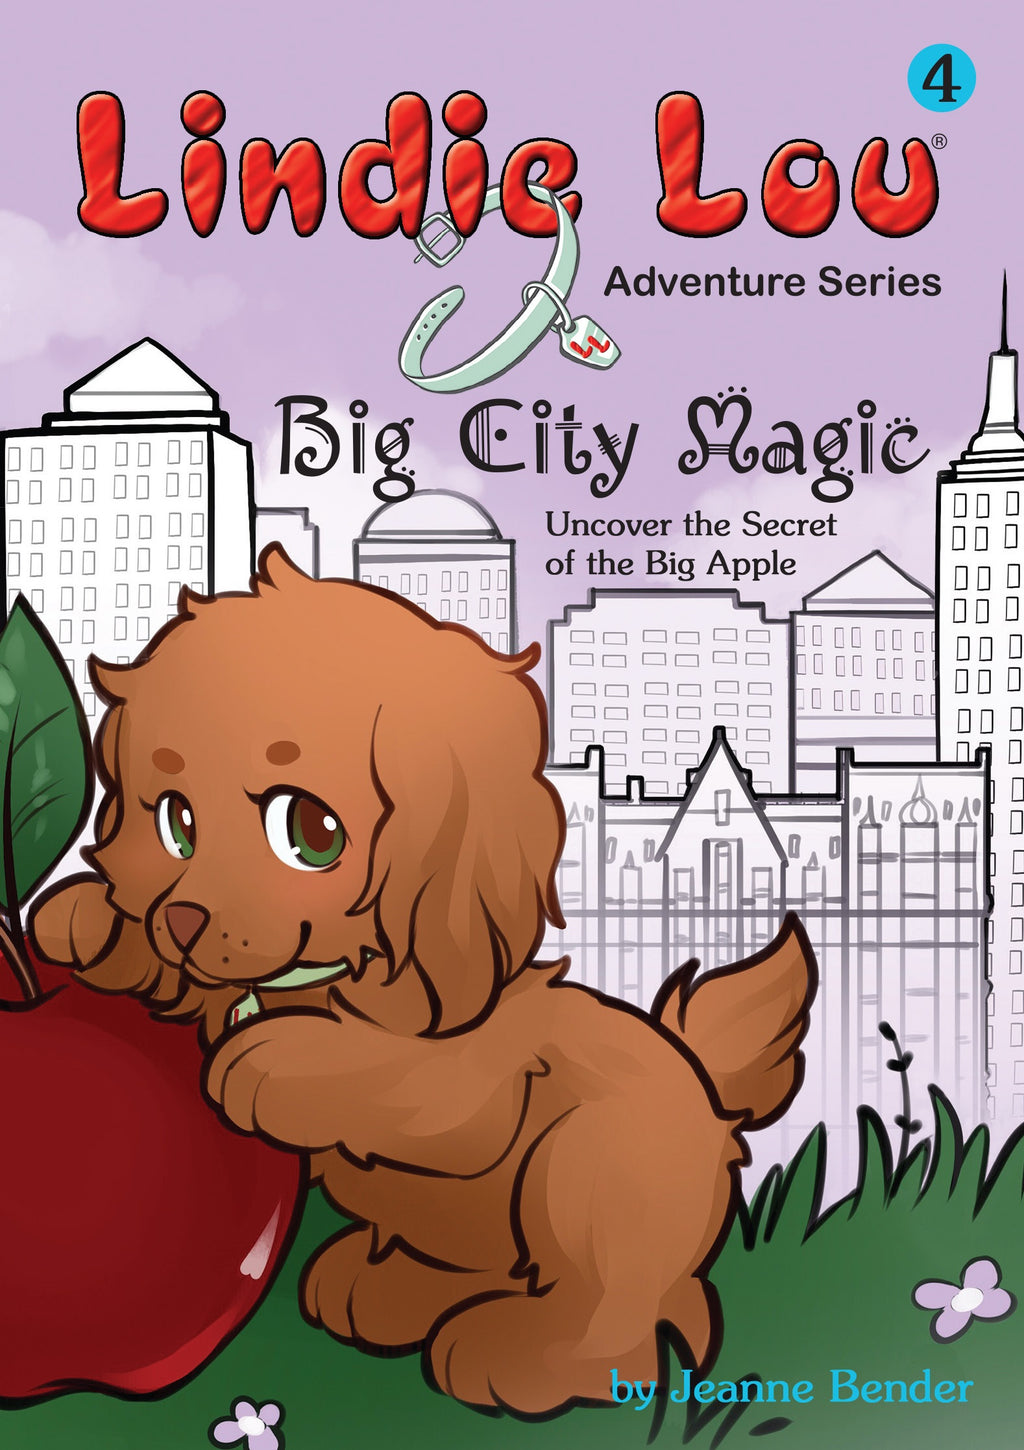 Big City Magic - Lindie Lou Adventure Series Book 4